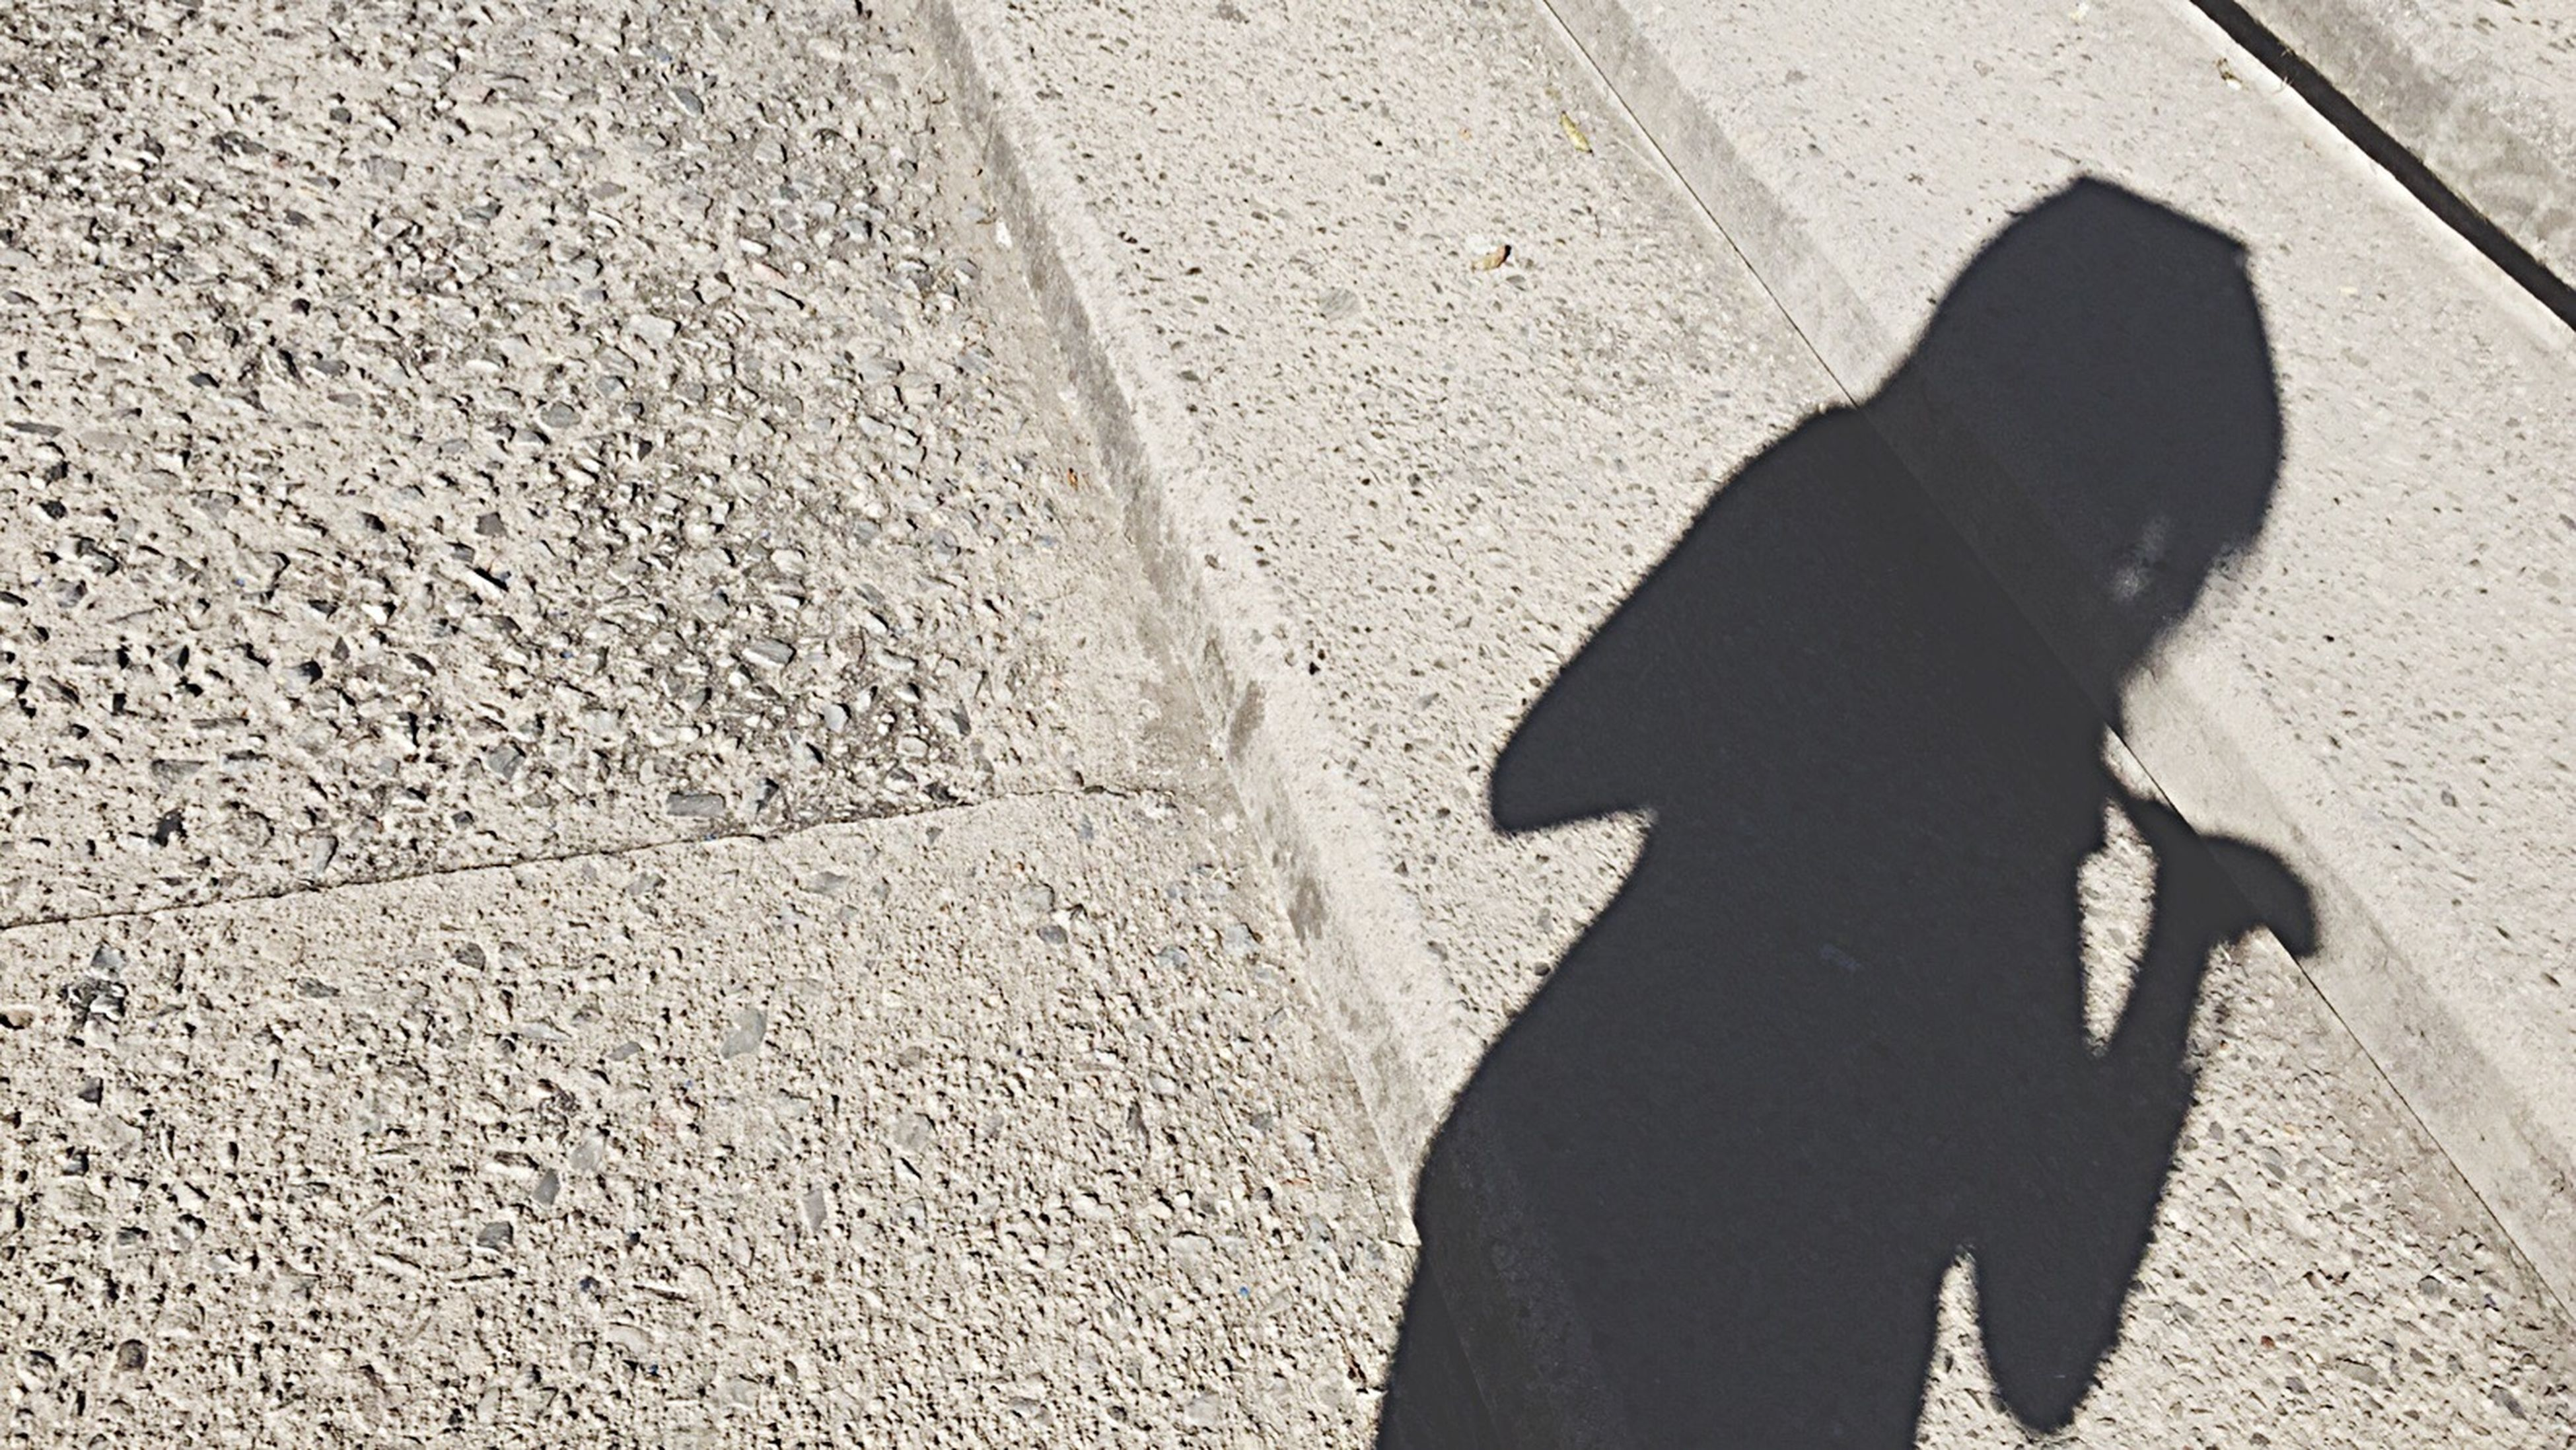 shadow, high angle view, street, sunlight, lifestyles, walking, standing, leisure activity, low section, day, men, focus on shadow, sidewalk, outdoors, person, unrecognizable person, road